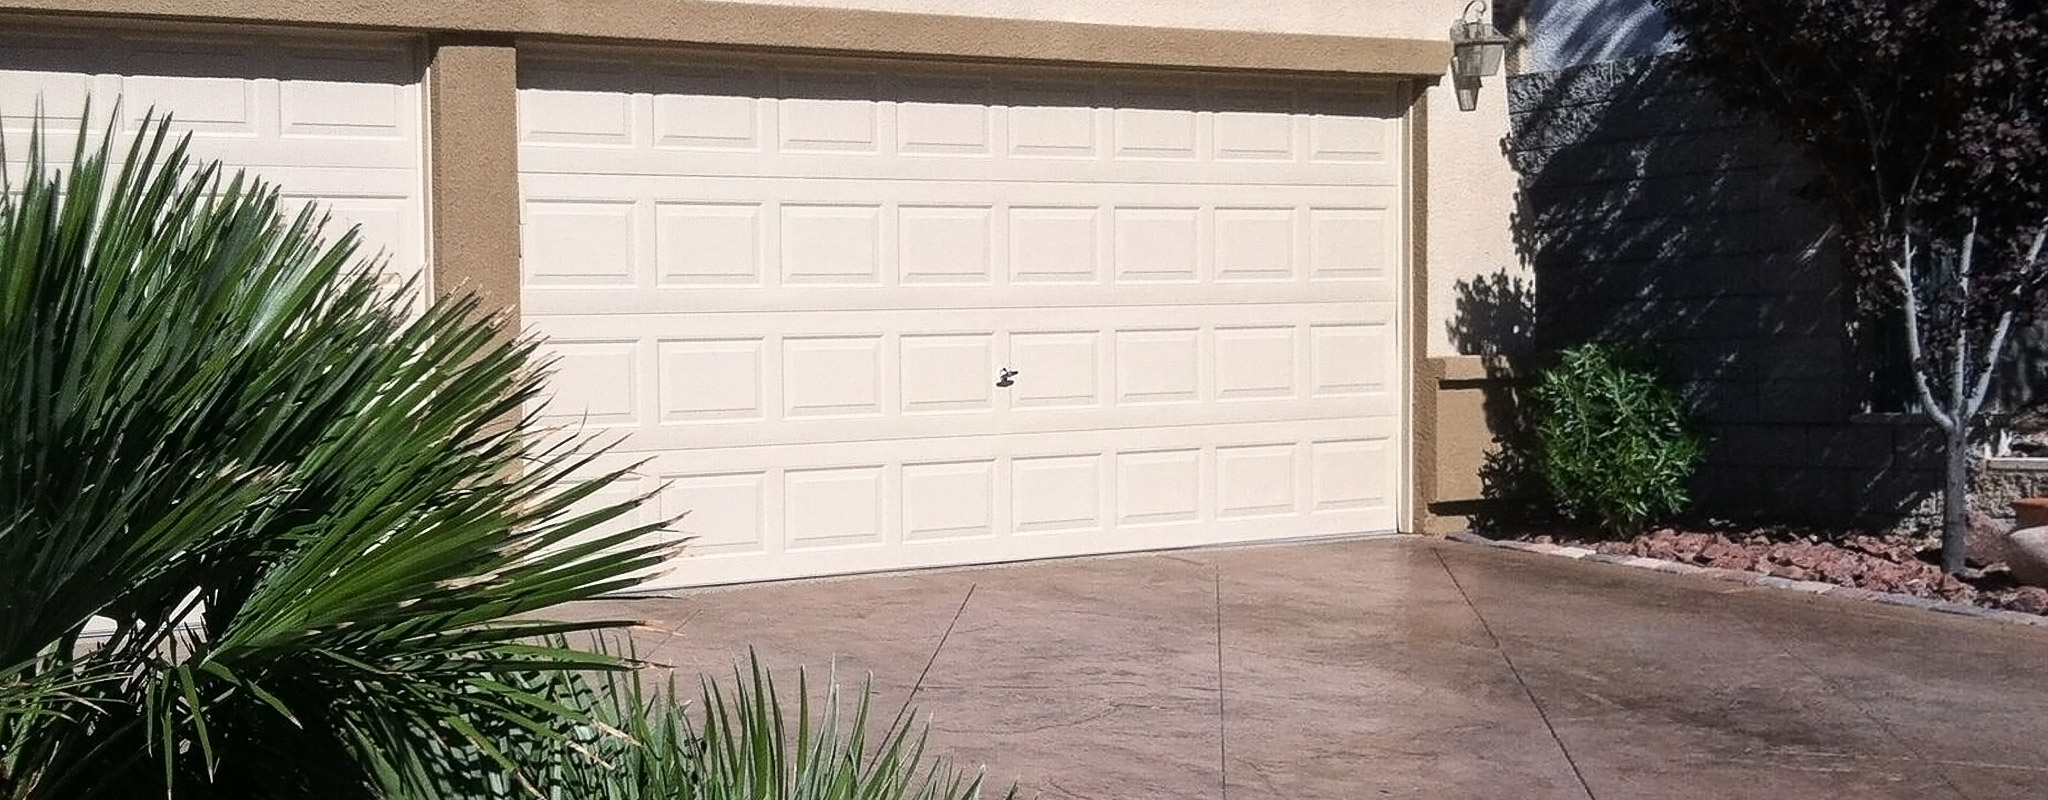 Garage Door Opener Installation Henderson Nv Ppi Blog